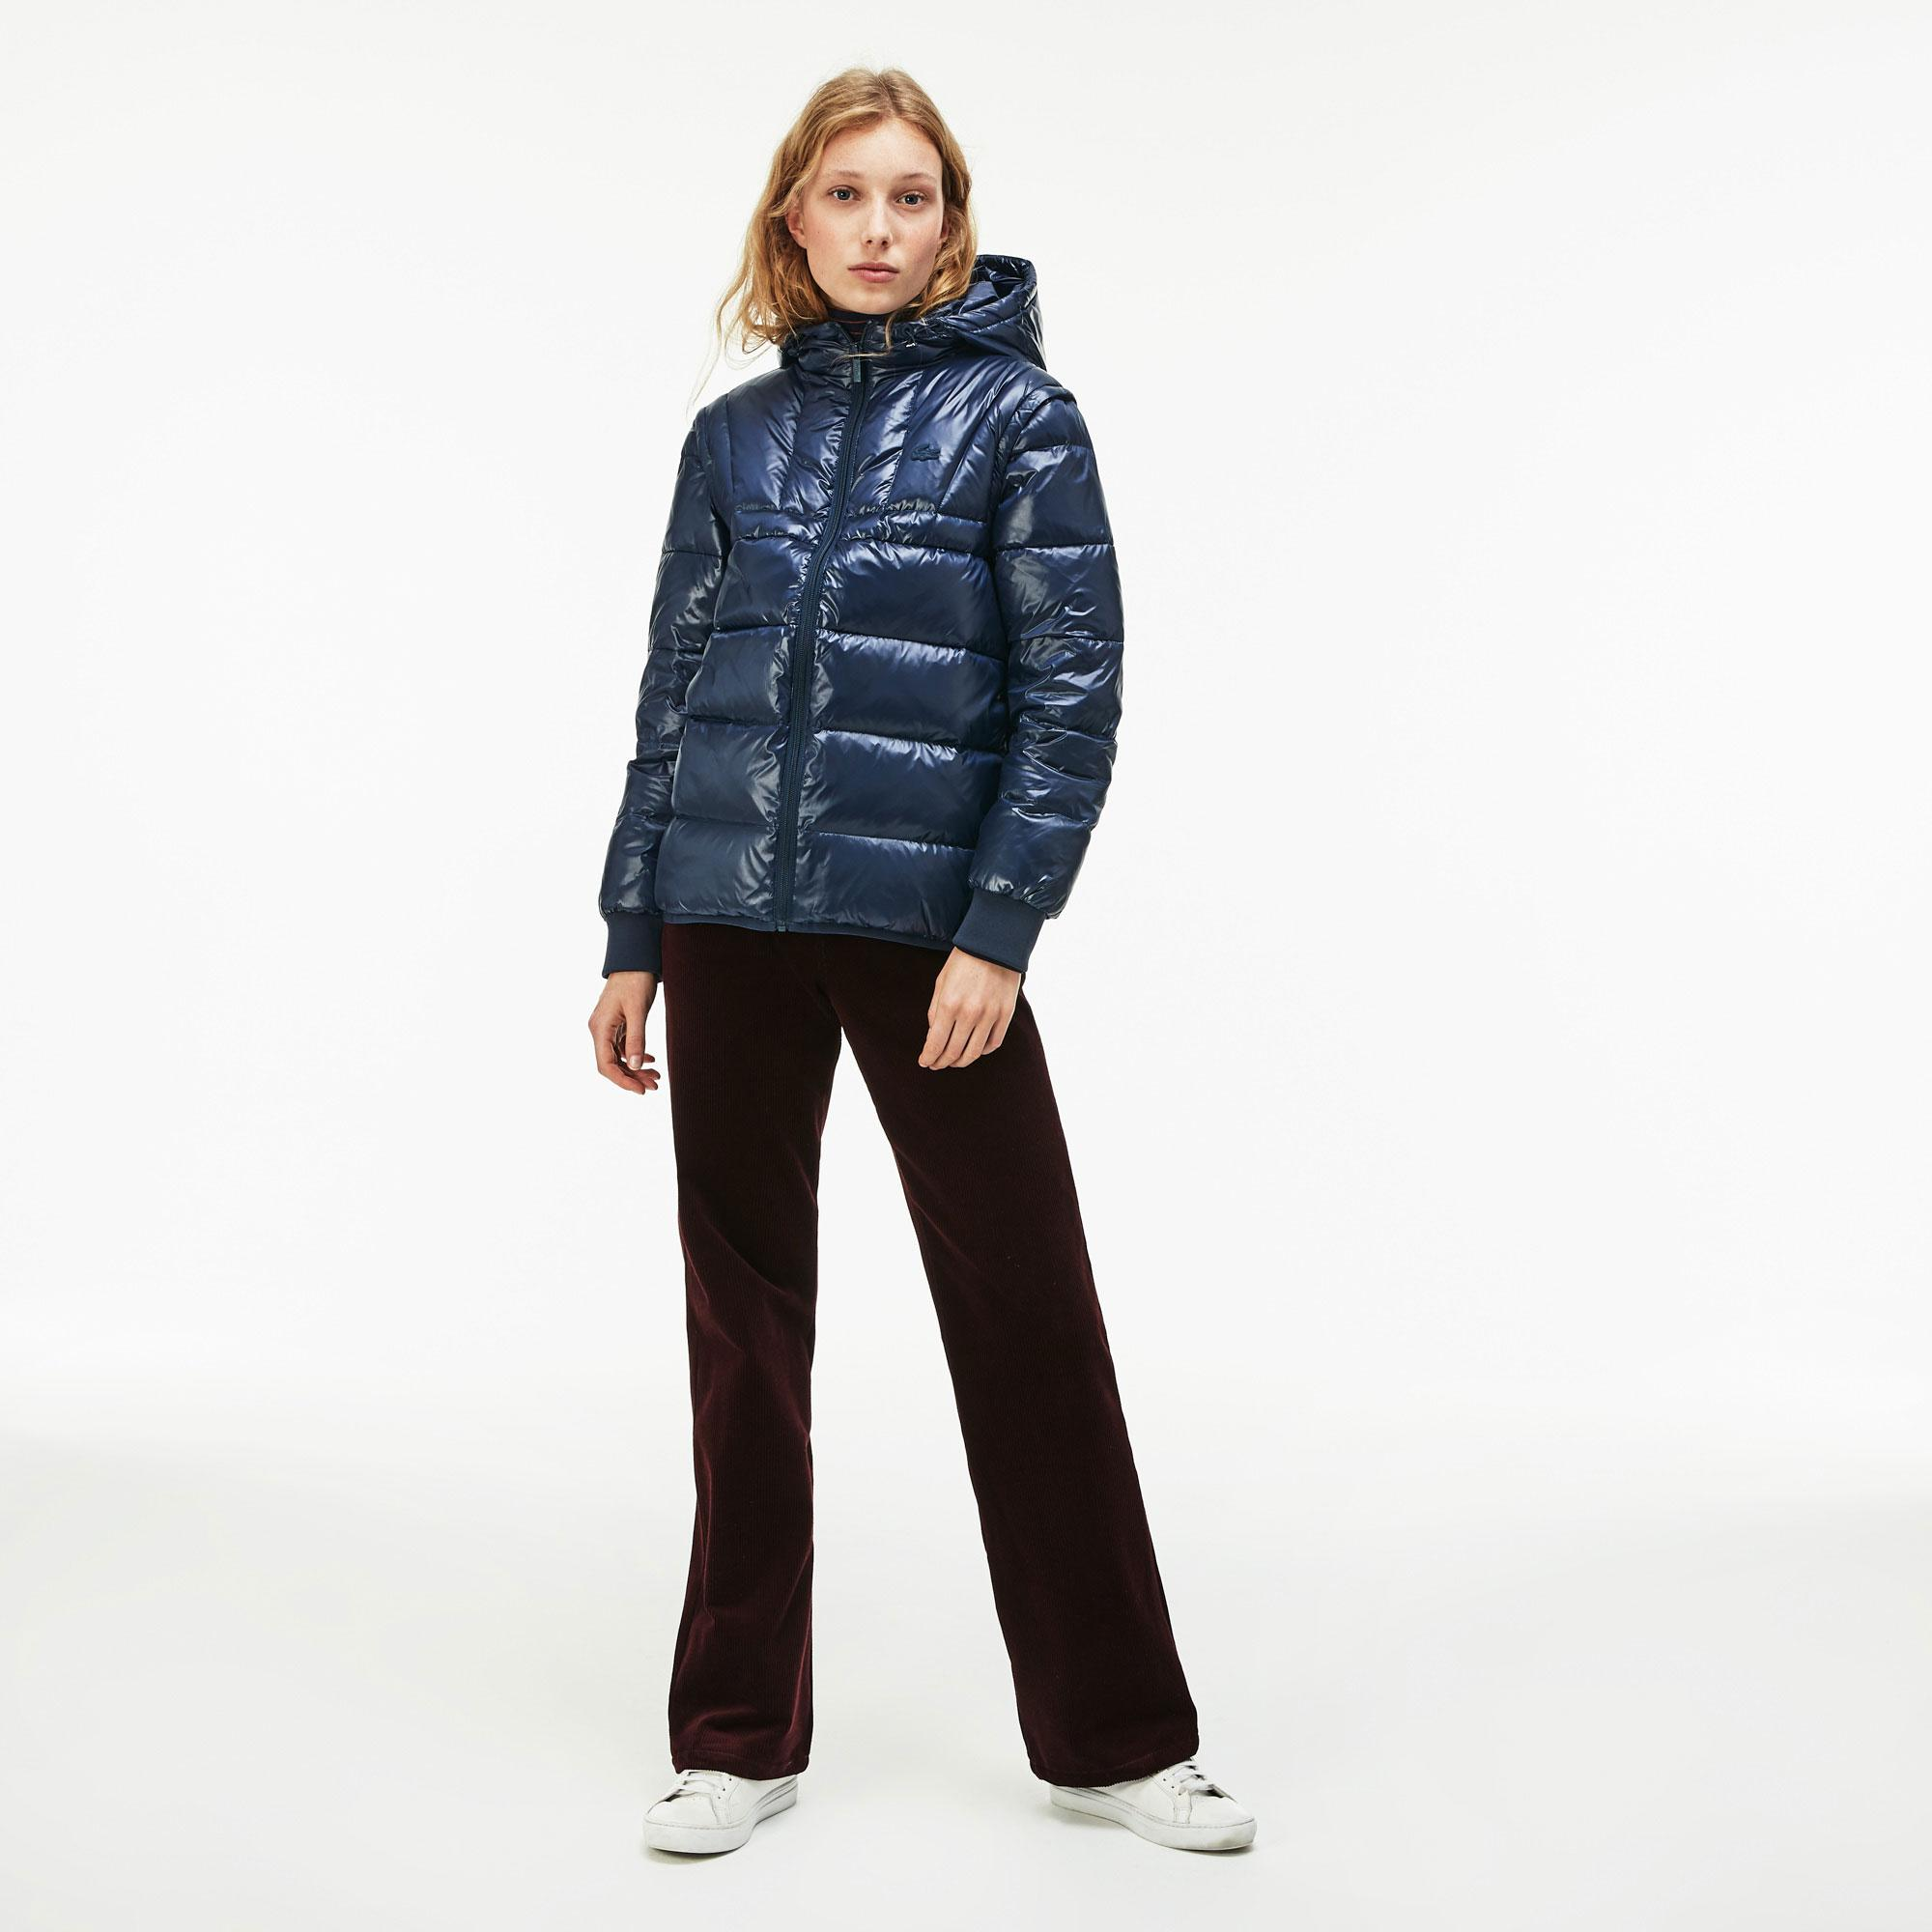 Lacoste Women's Hooded Quilted Taffeta Jacket